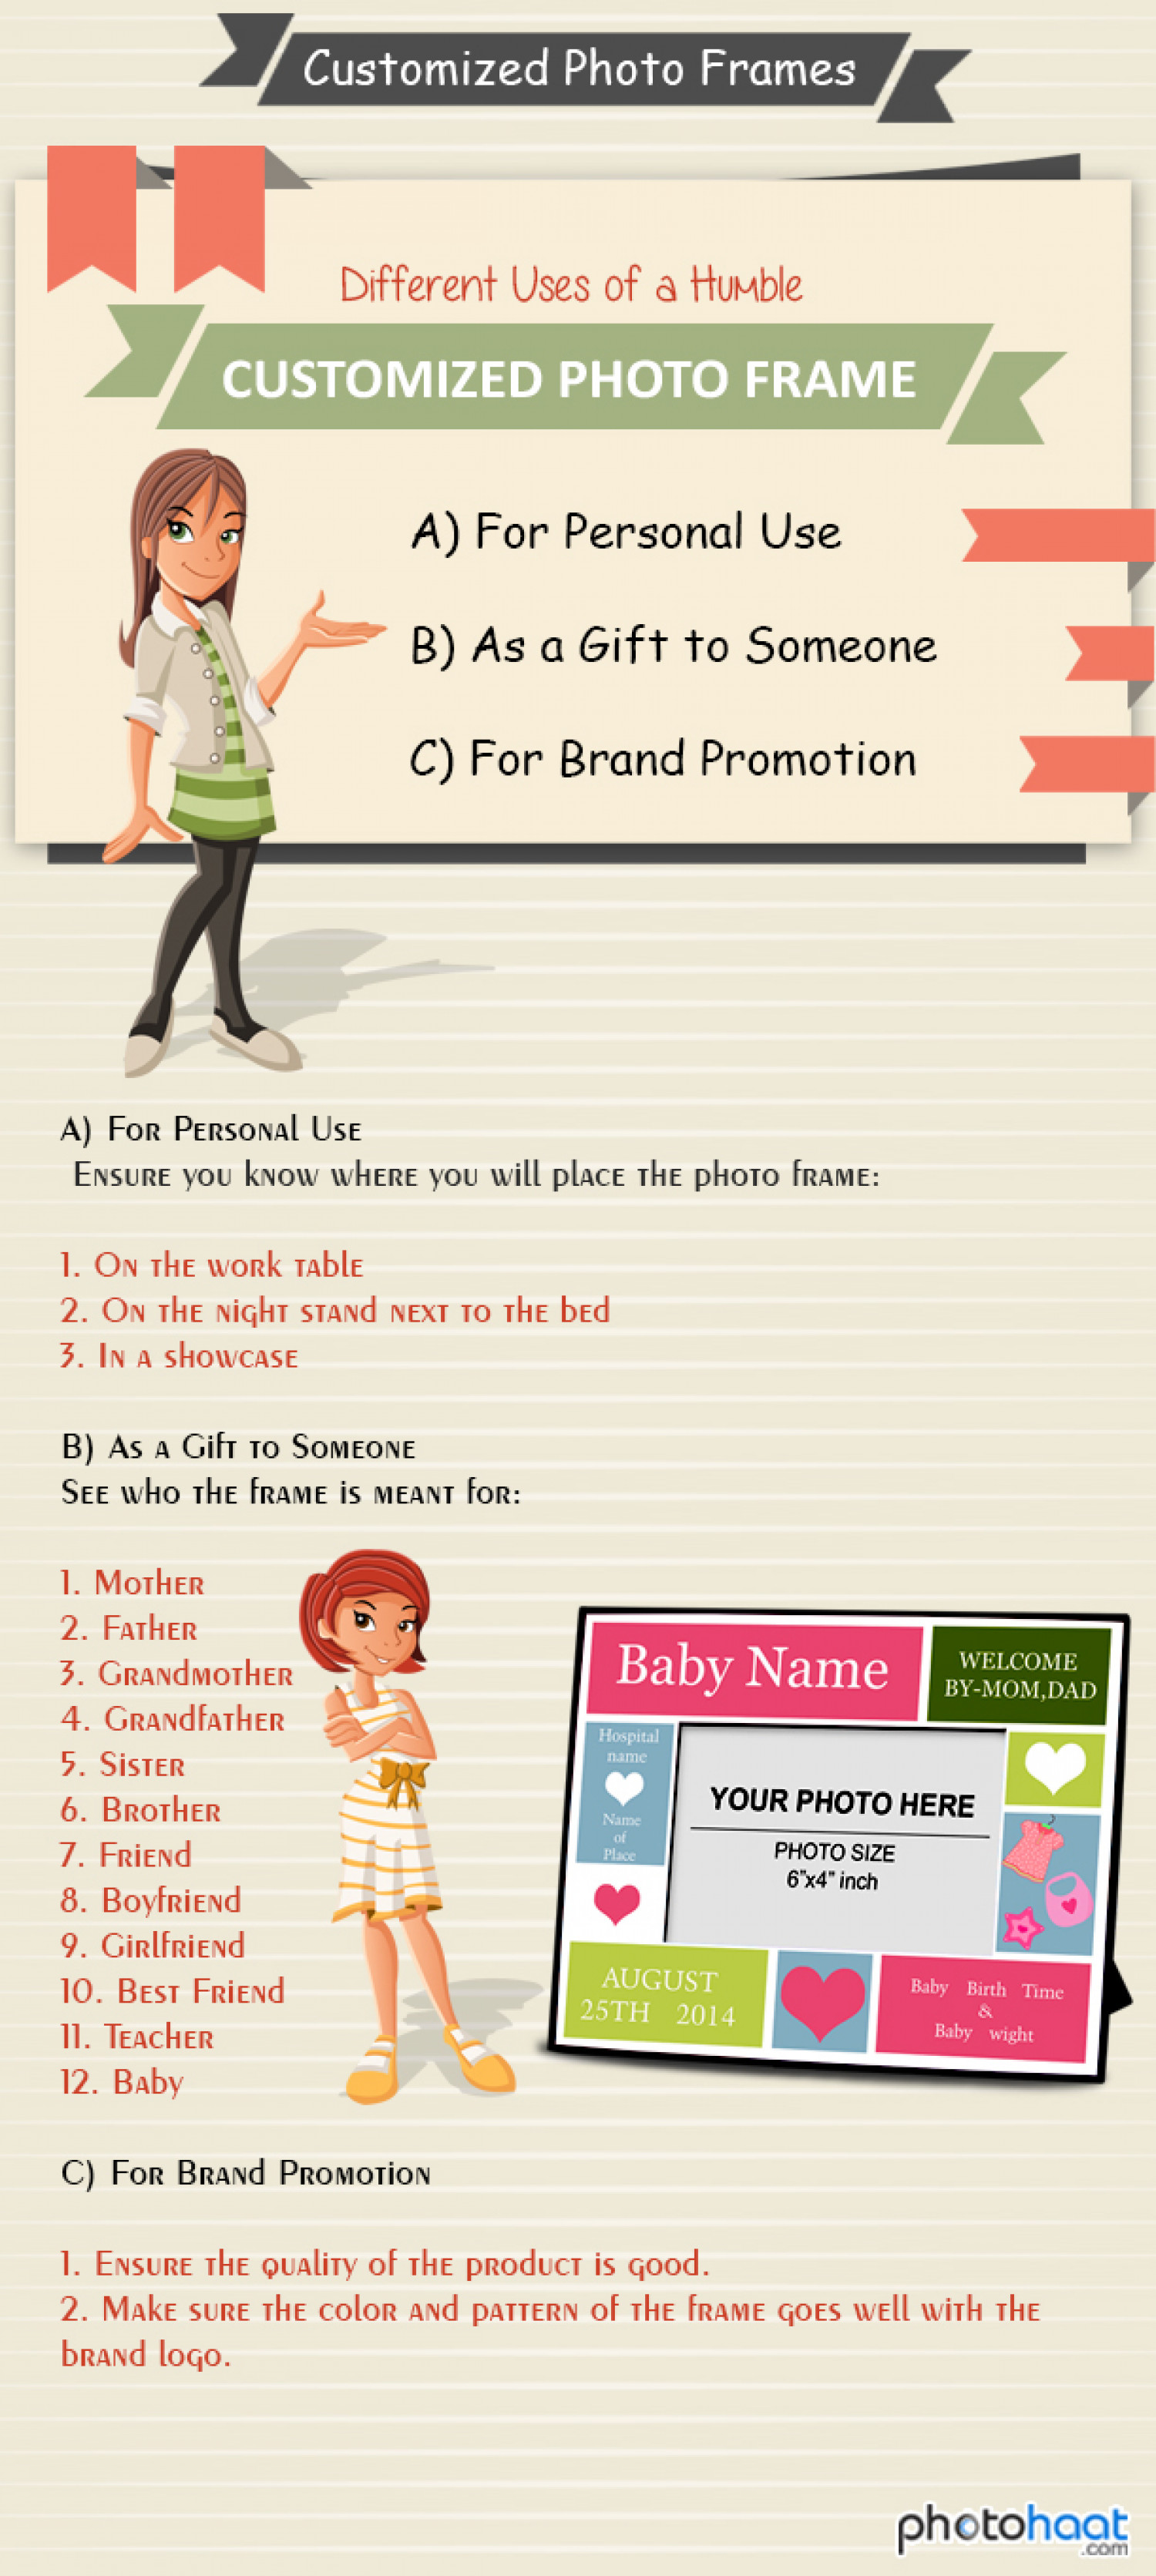 Complete Info on Customized Photo Frames @ Photohaat.com Infographic